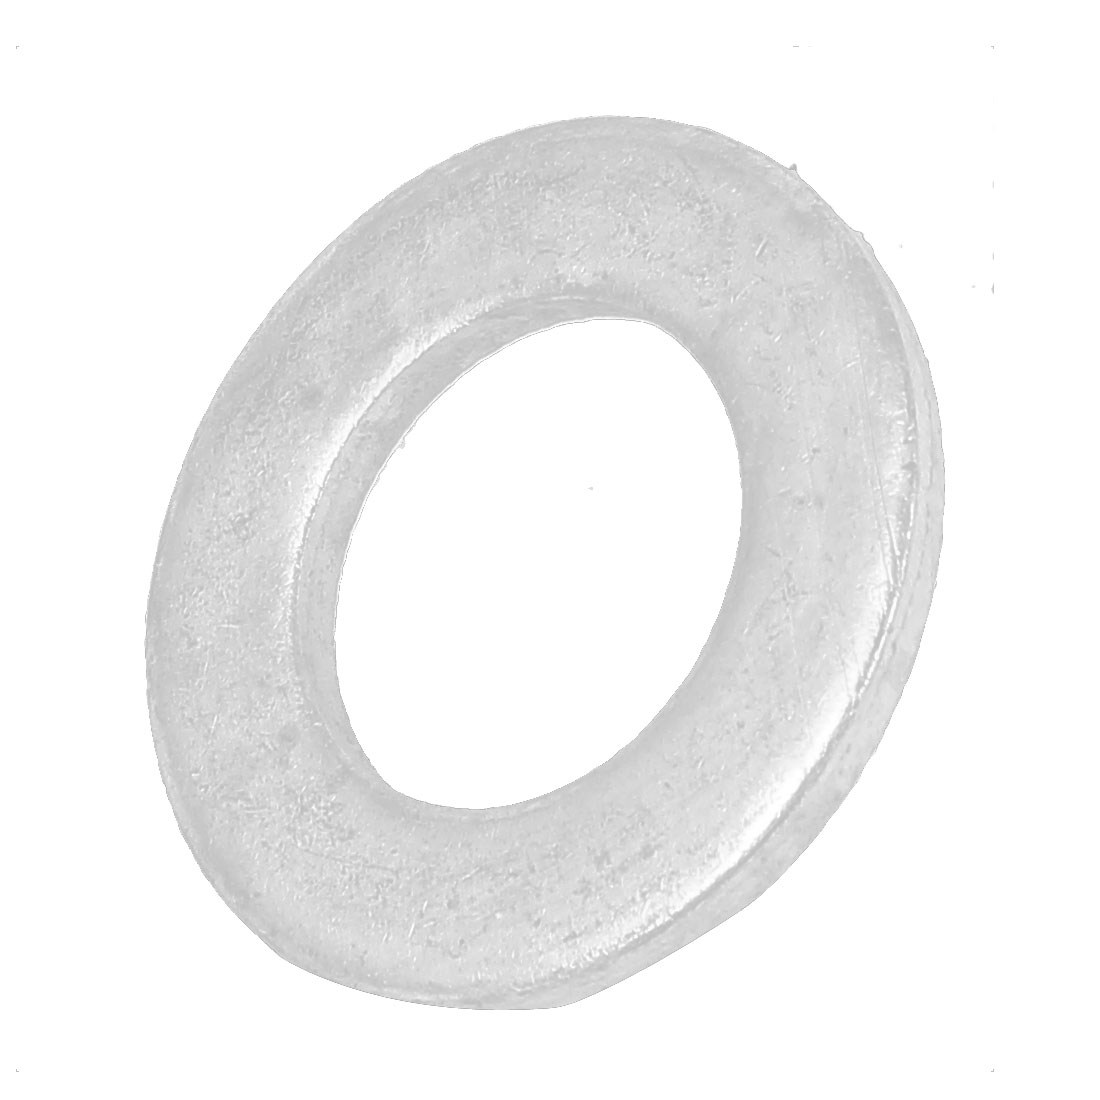 24mm x 44mm x 3.9mm Zinc Plated Flat Pads Washers Gaskets Fasteners GB97 2PCS